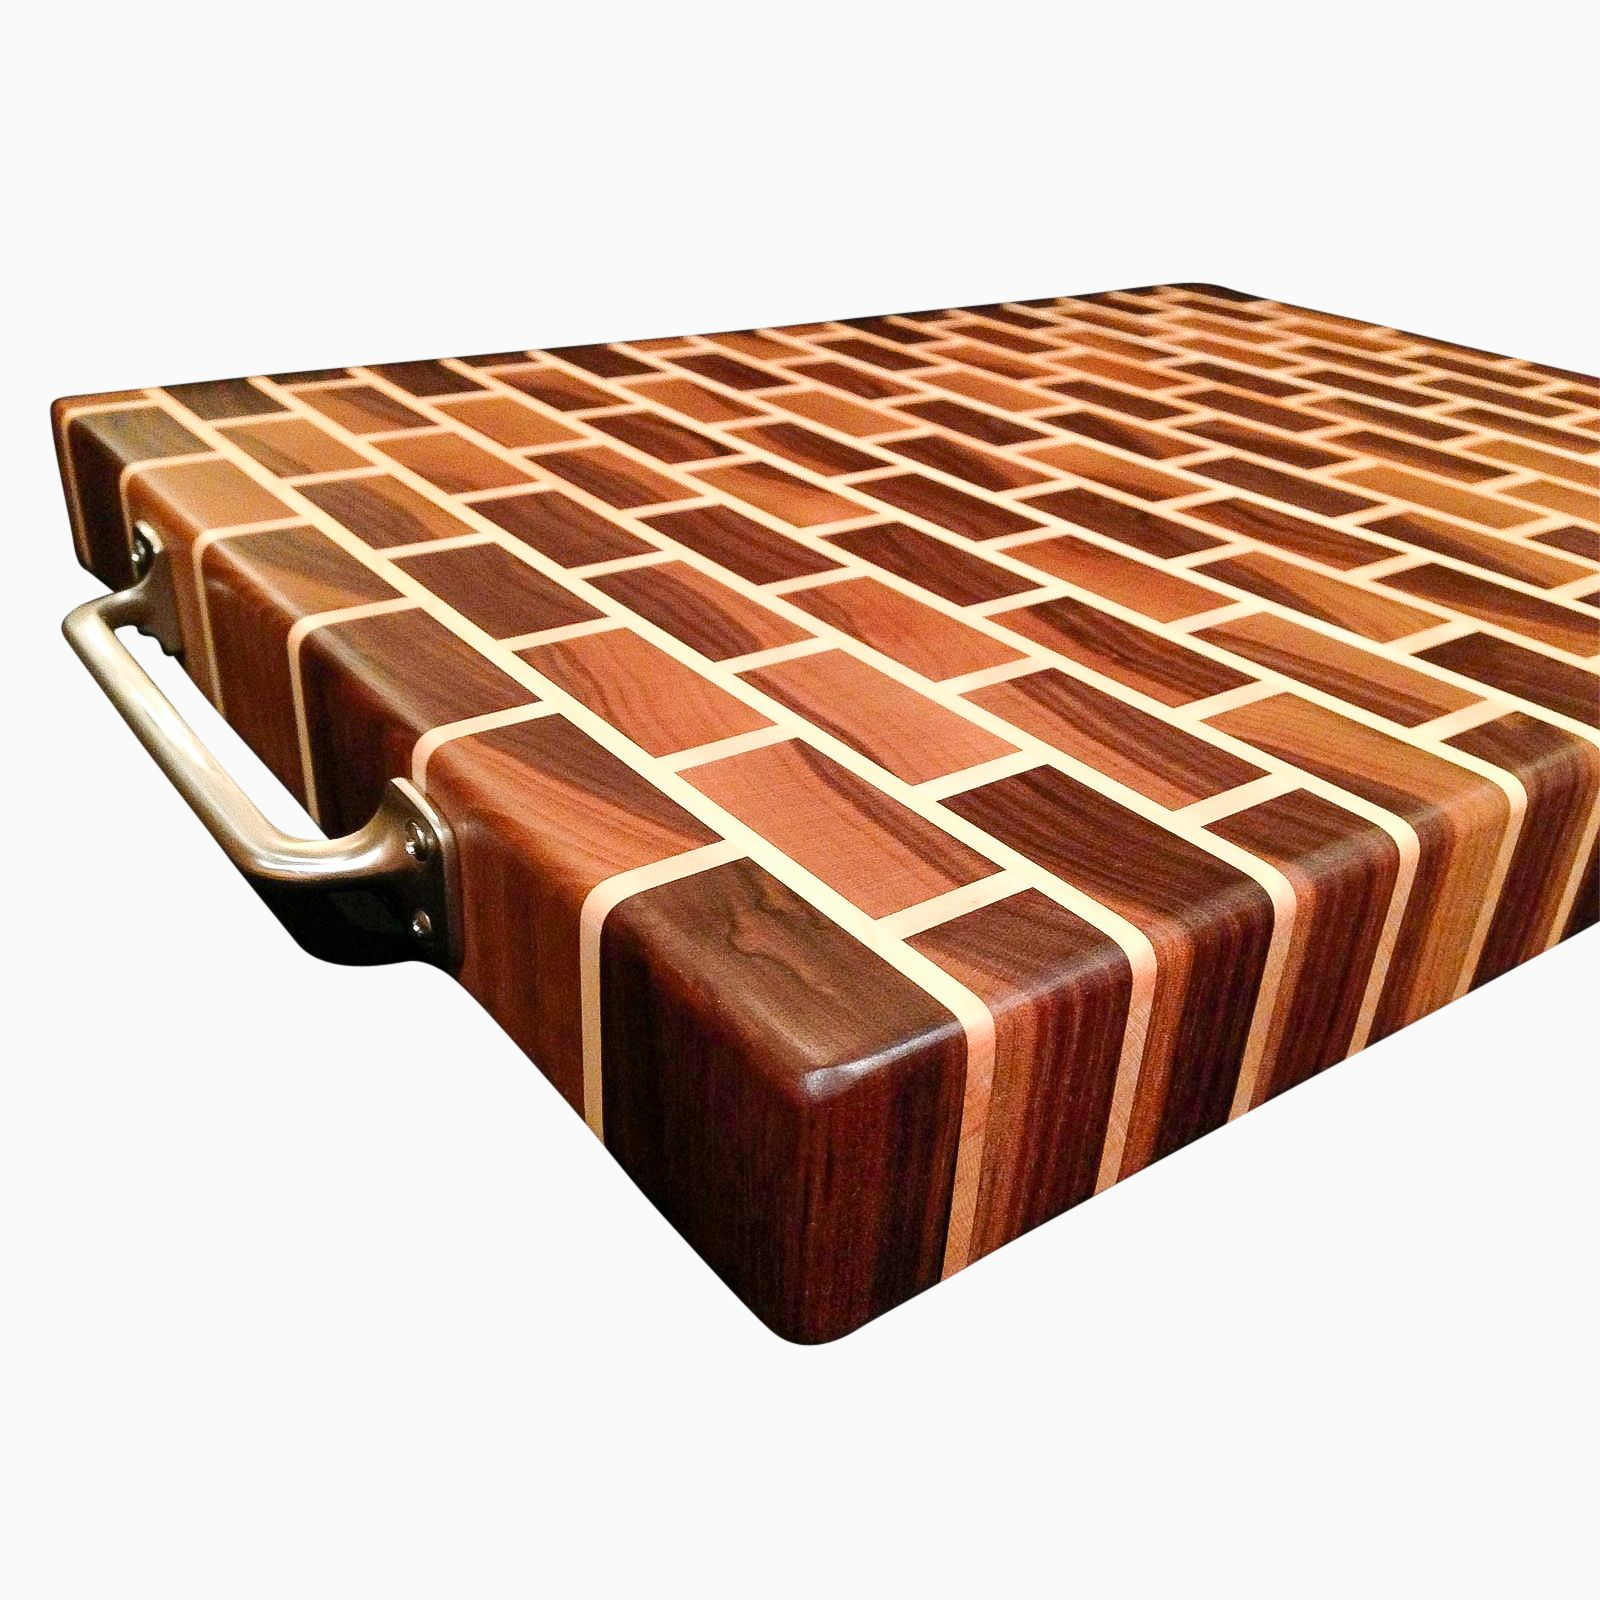 Buy A Hand Crafted Black Walnut And Rock Maple End Grain